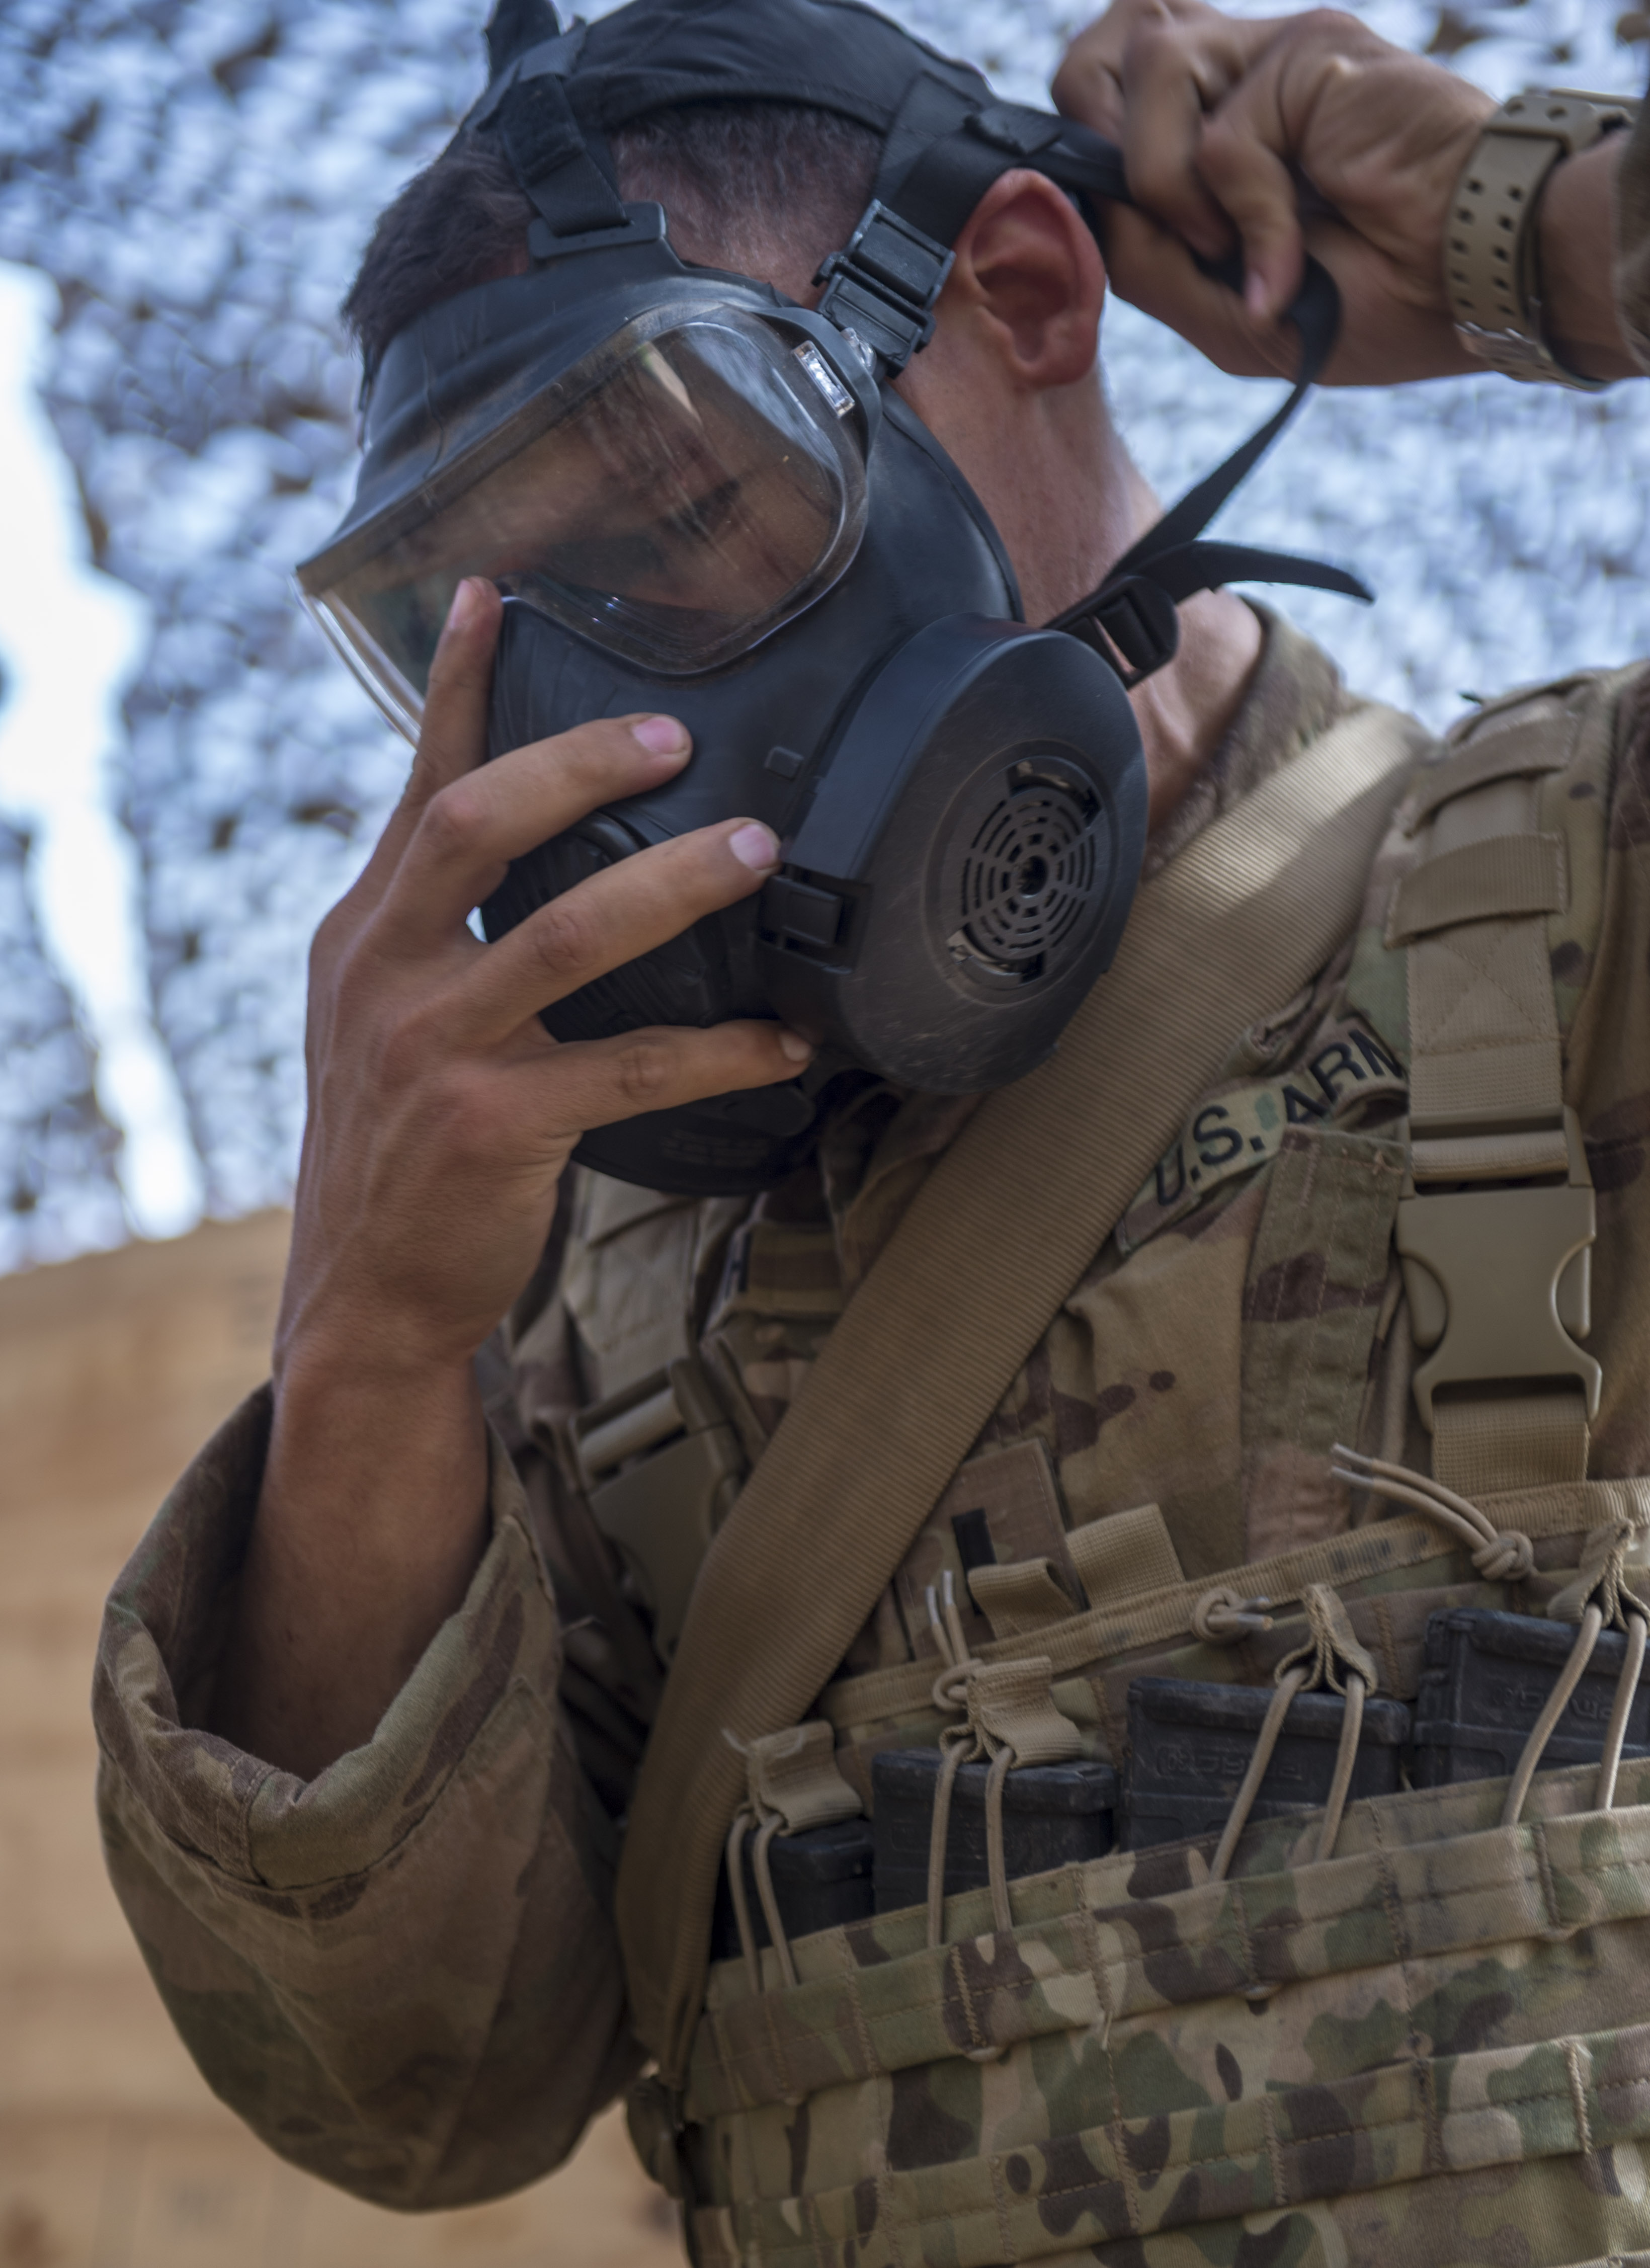 A U.S. Army Soldier assigned to Combined Joint Task Force - Horn of Africa puts on a gas mask during training in preparation for an Expert Infantryman Badge evaluation at Camp Lemonnier, Djibouti, Jan. 24, 2018. After two weeks of training and five days of testing, 50 Soldiers completed the process to earn the coveted special skills badge that requires Soldiers to perform an Army Physical Fitness Test, day and night land navigation, a 12-mile forced march, and 30 individual tasks covering weapons, medical, and security patrol skills. (U.S. Air Force photo by Staff Sgt. Timothy Moore)